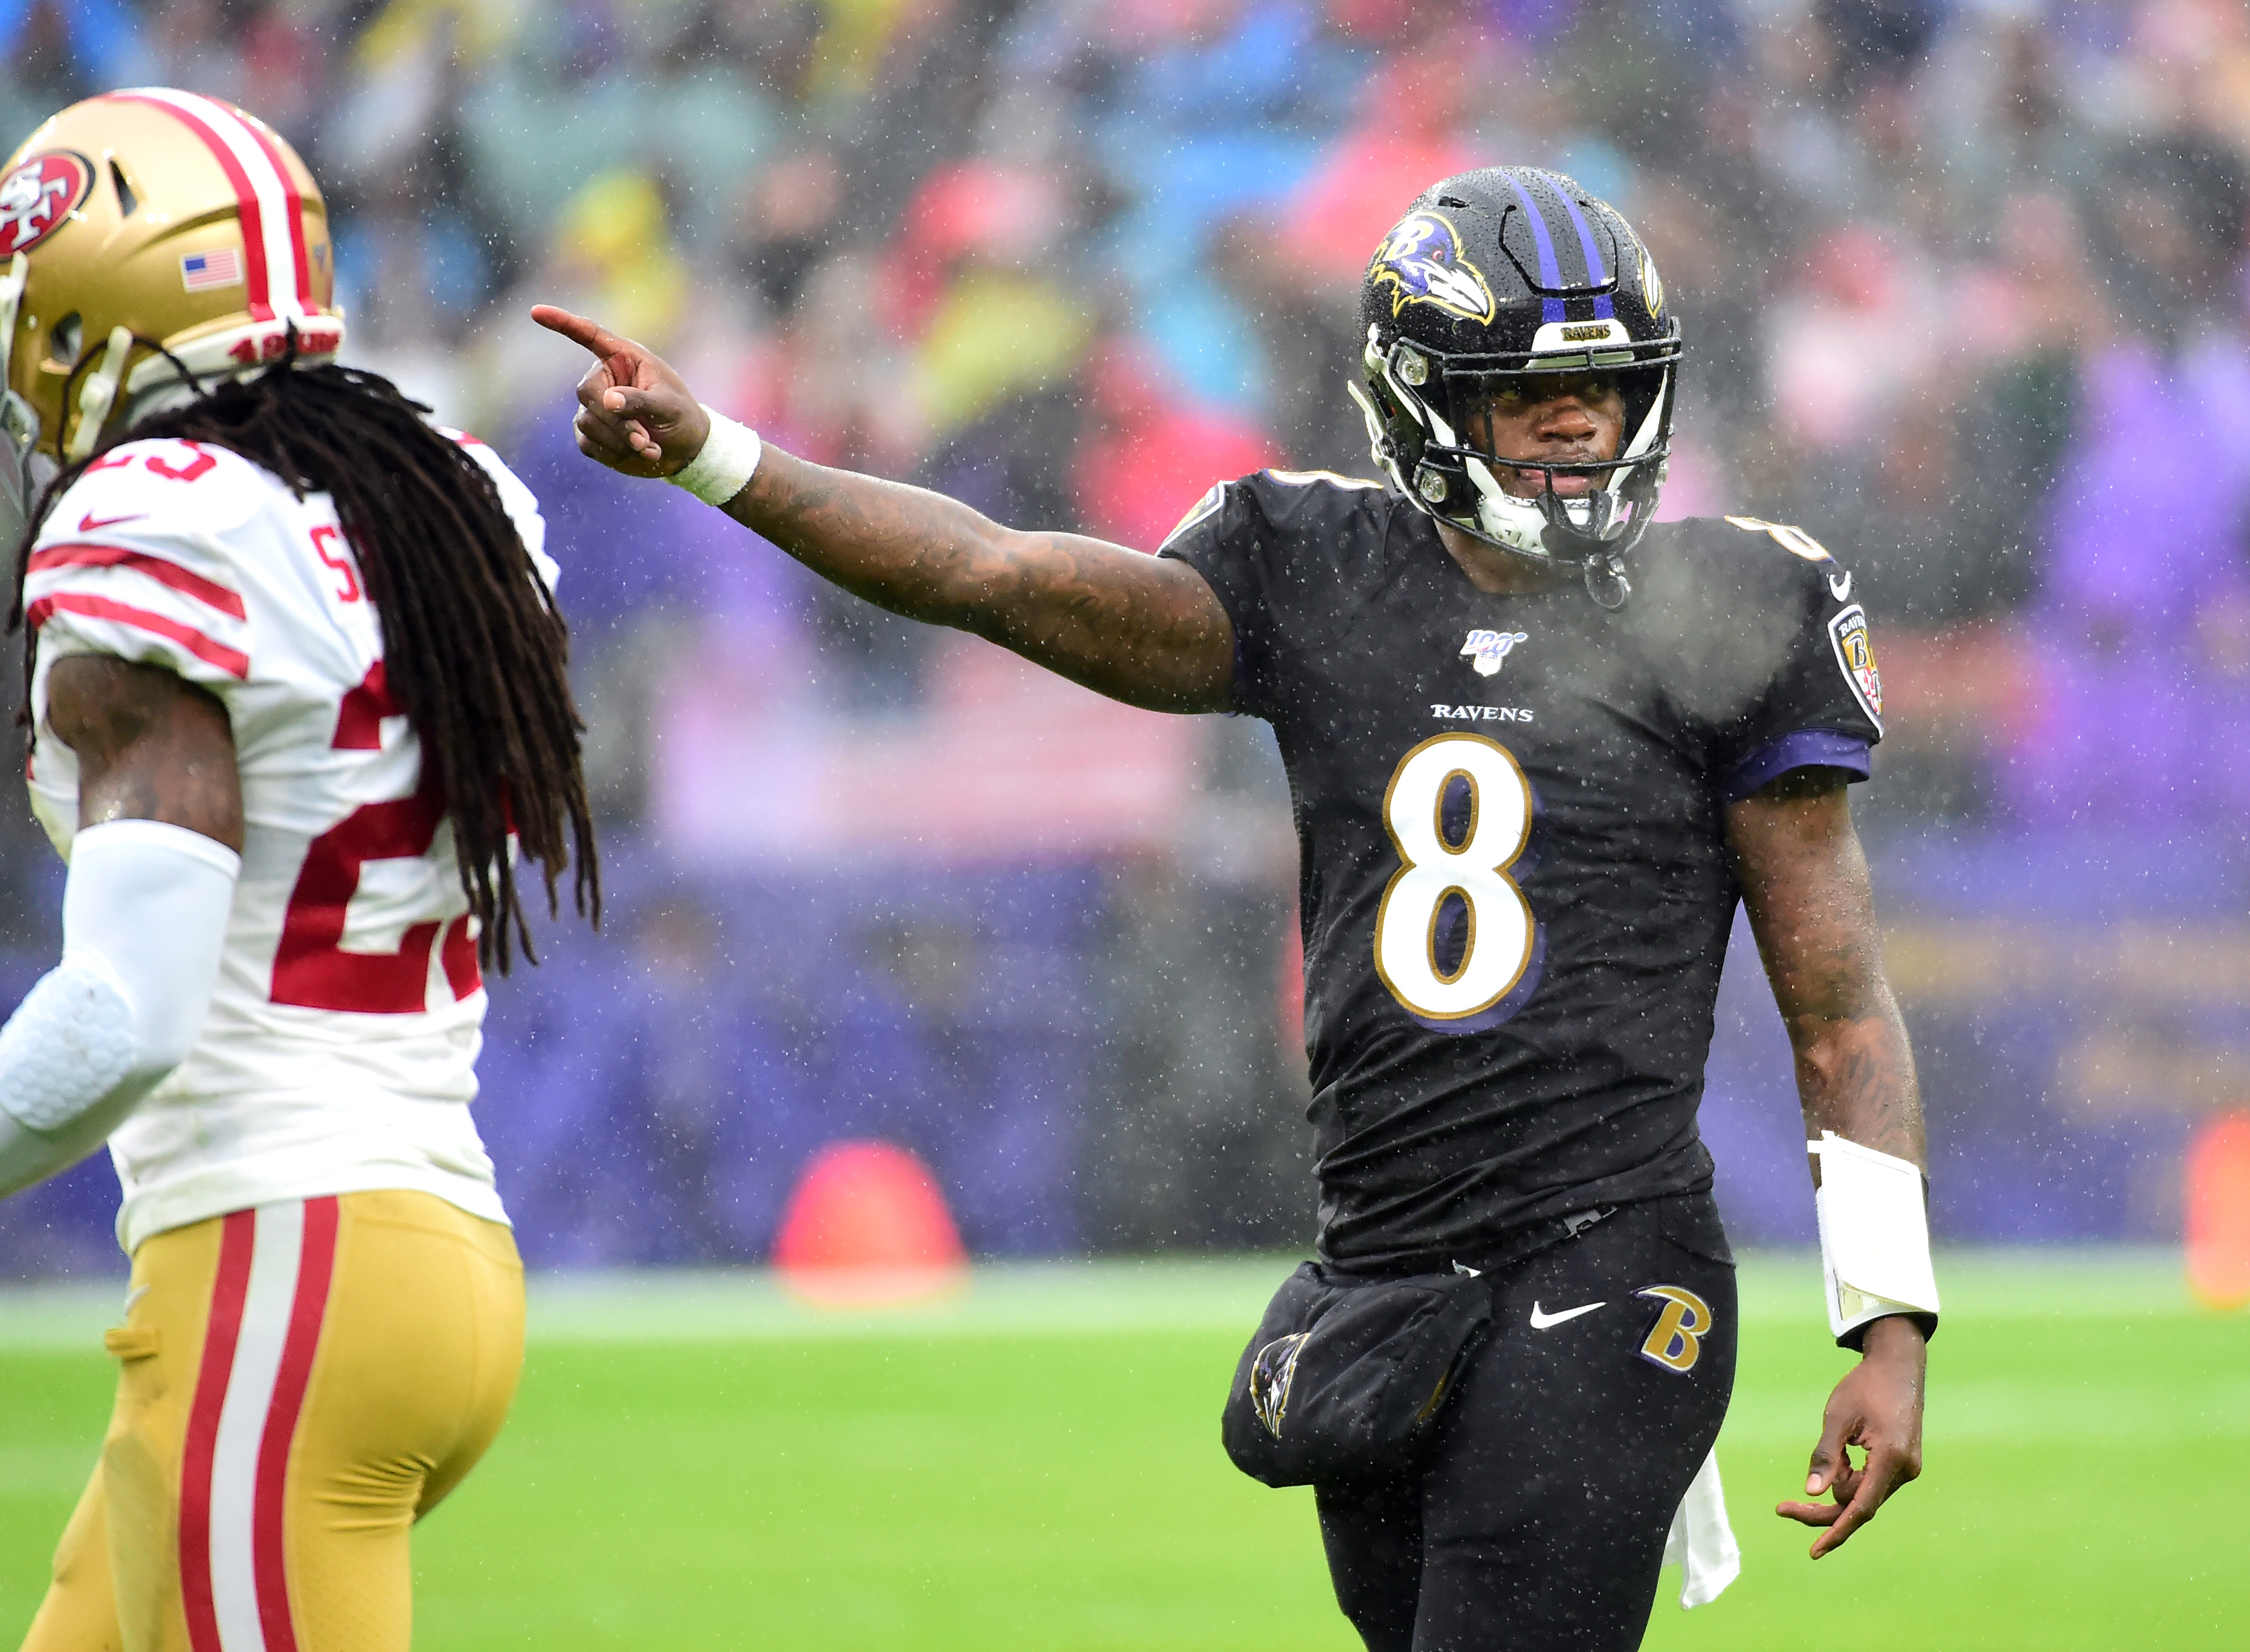 49ers broadcaster has hot take about Lamar Jackson with racial undertones, gets suspended